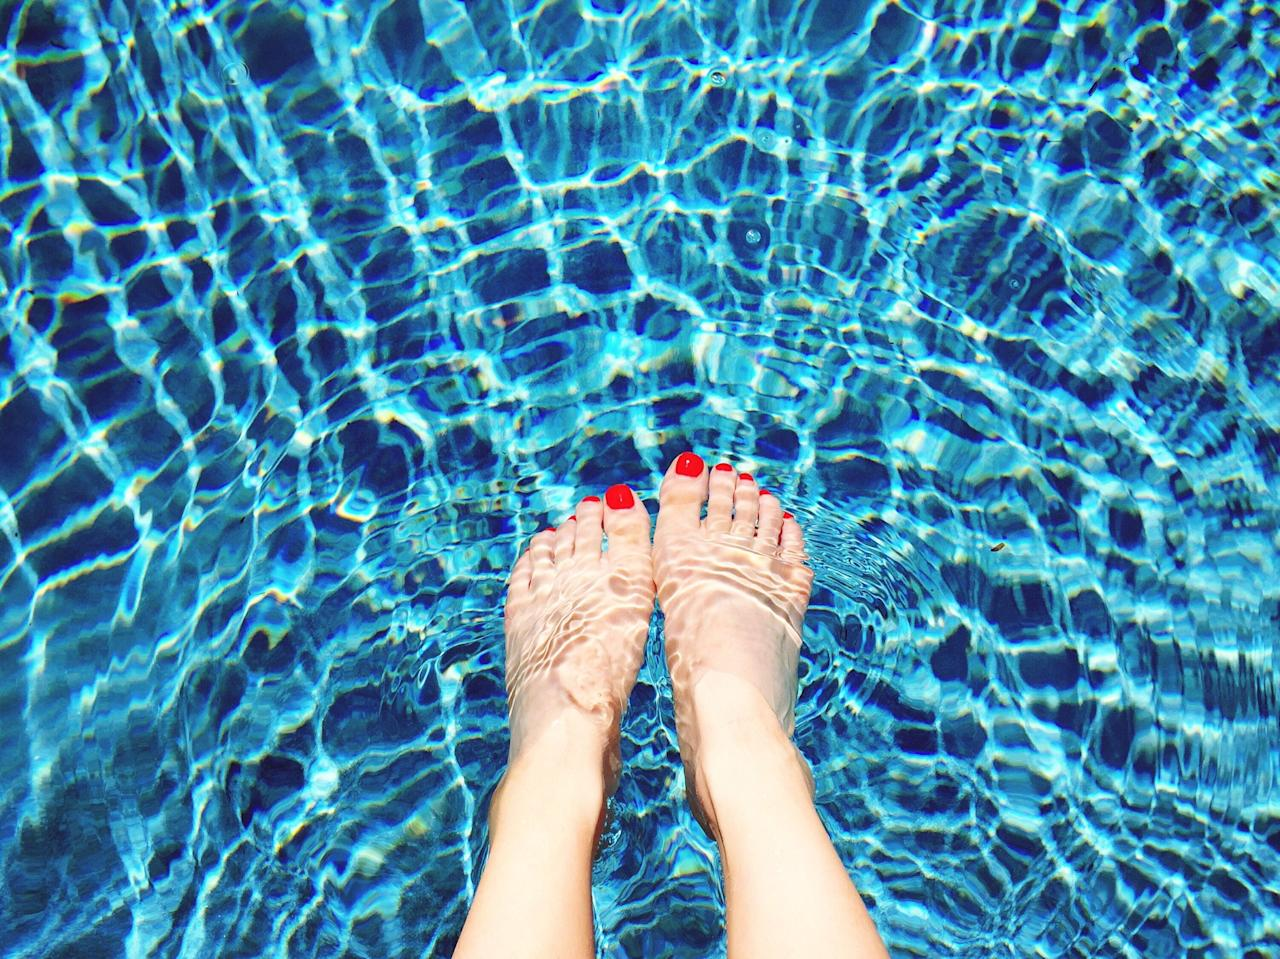 <p>It's that time of year to give your feet some TLC. After a long season in boots, sneakers, and other closed-toe shoes, you're probably feeling like your heels are suffering from neglect. Ahead, we've rounded up some foot scrubs and creams that will rehab your soles so you're ready to don your favorite sandals in no time. </p>